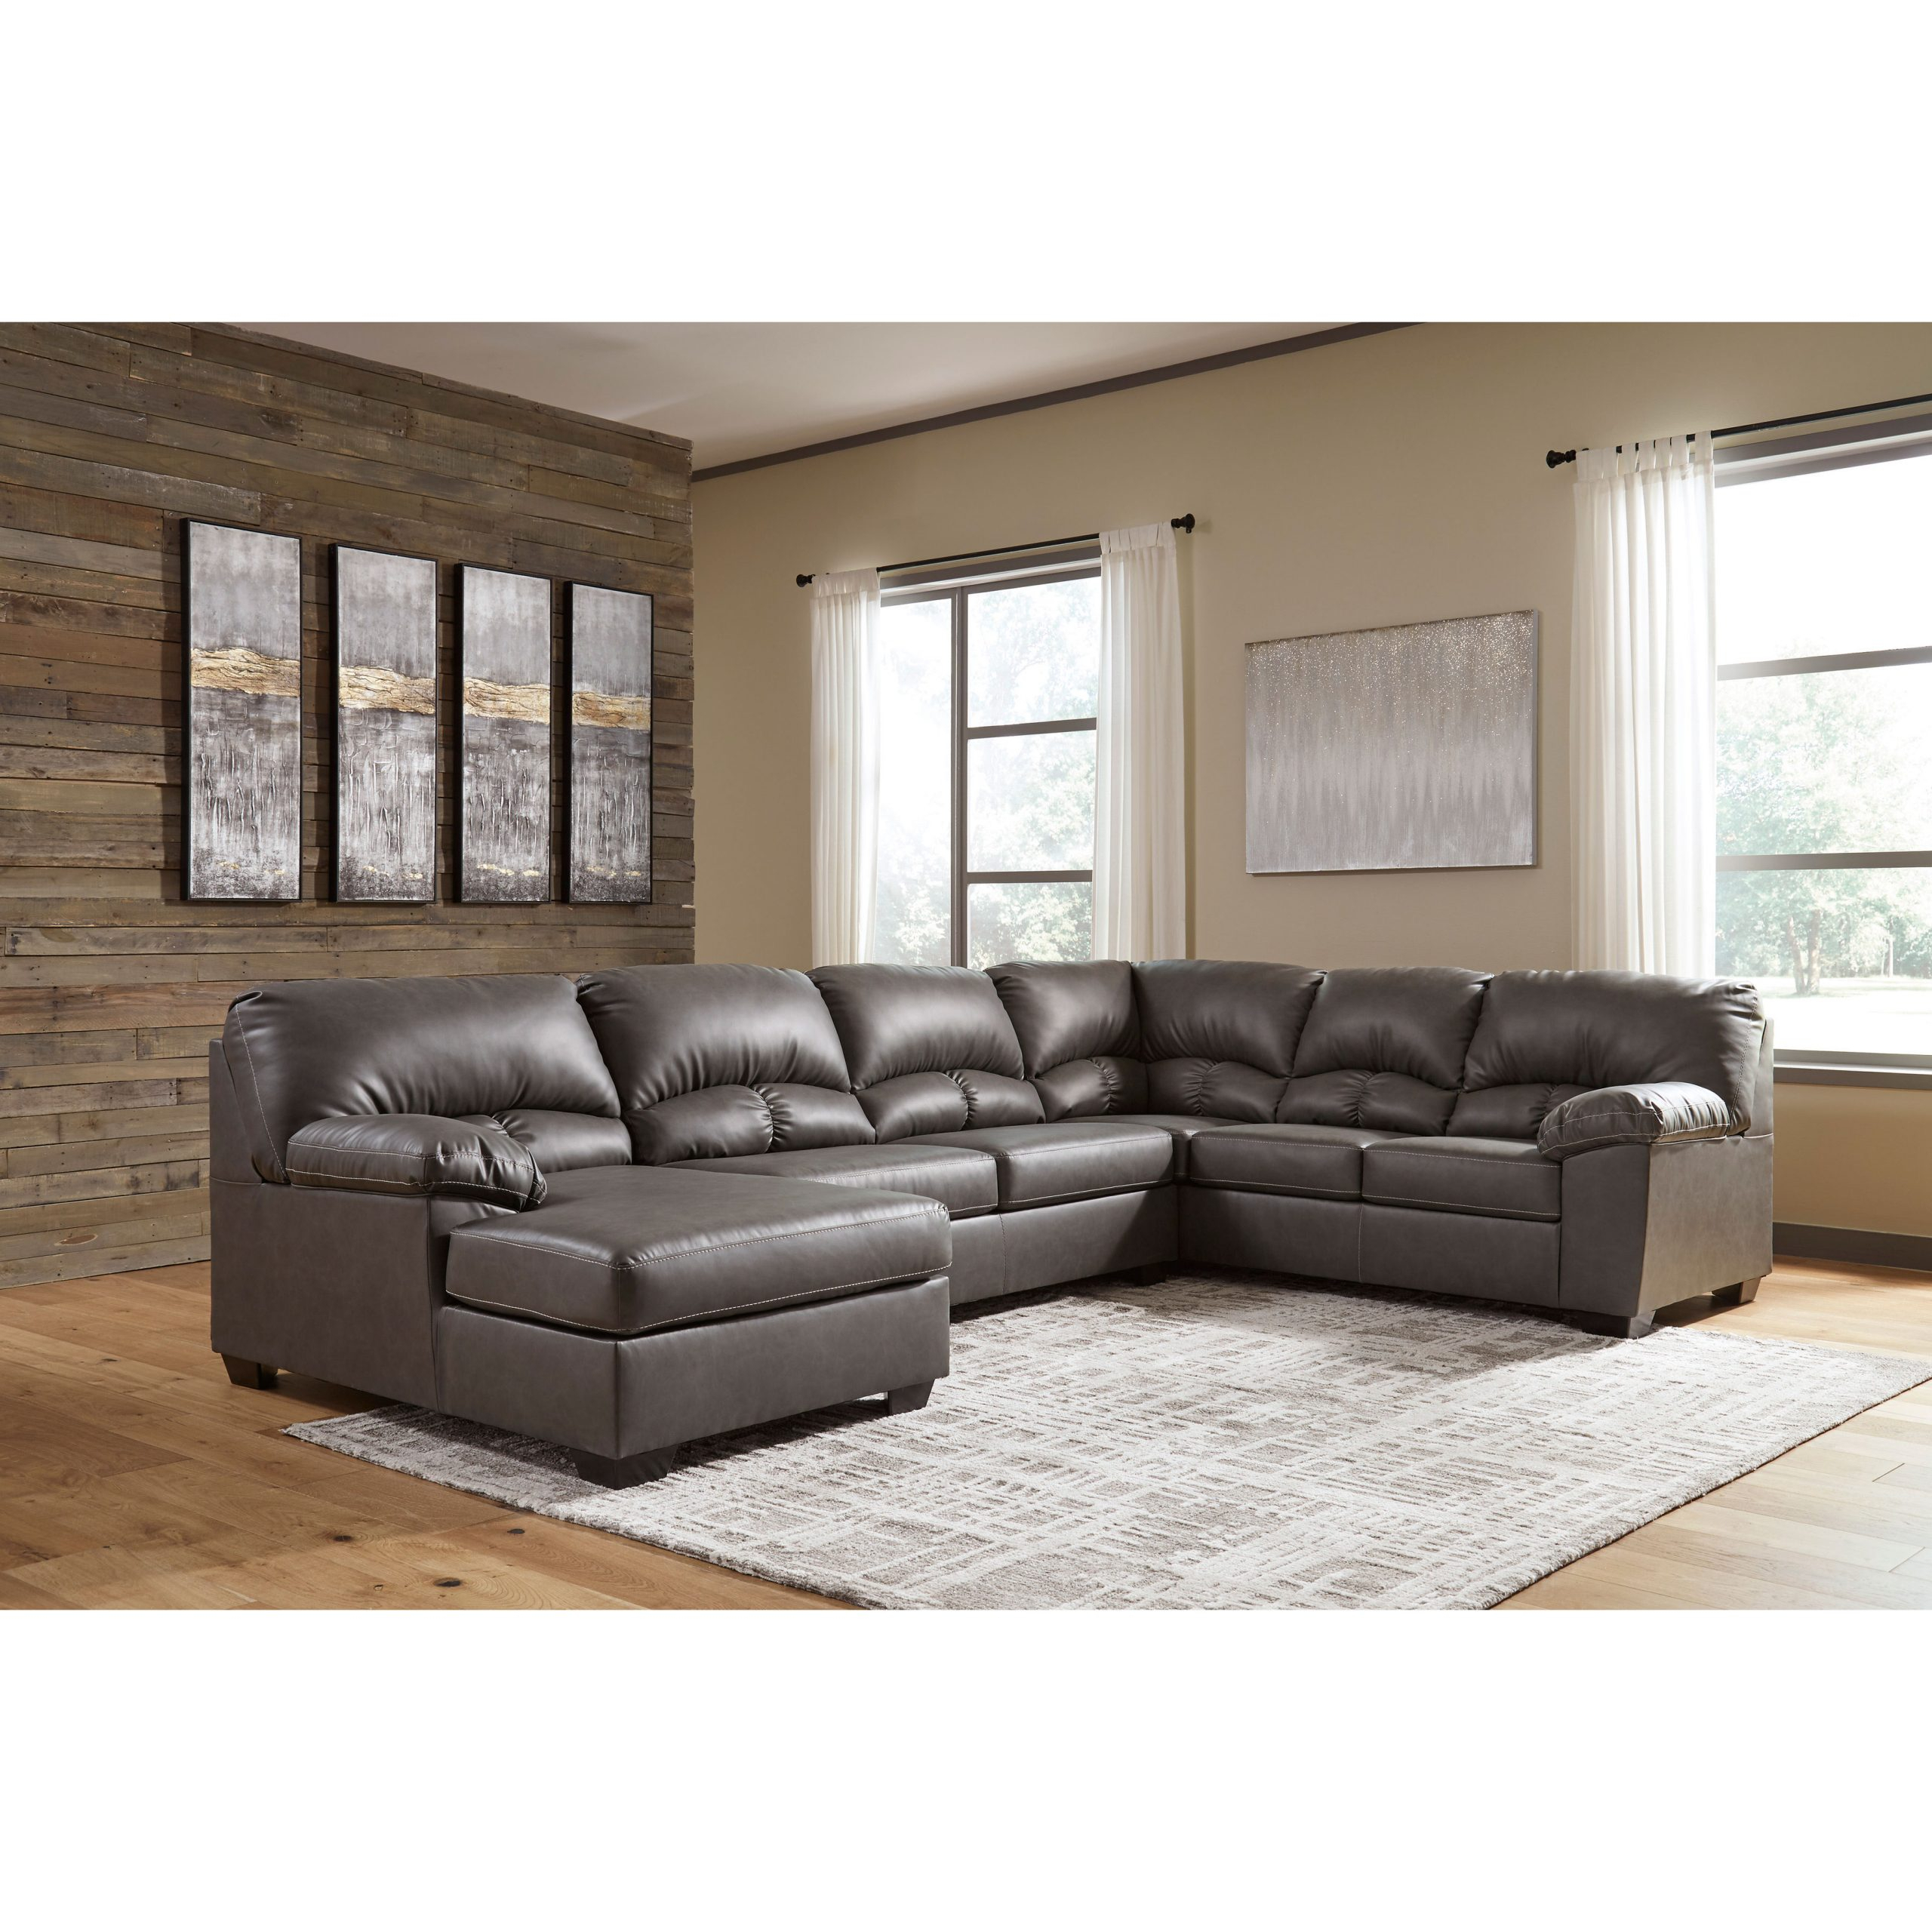 Aberton 3 Piece Laf Chaise Sectional | Furnishmyhome (View 5 of 15)